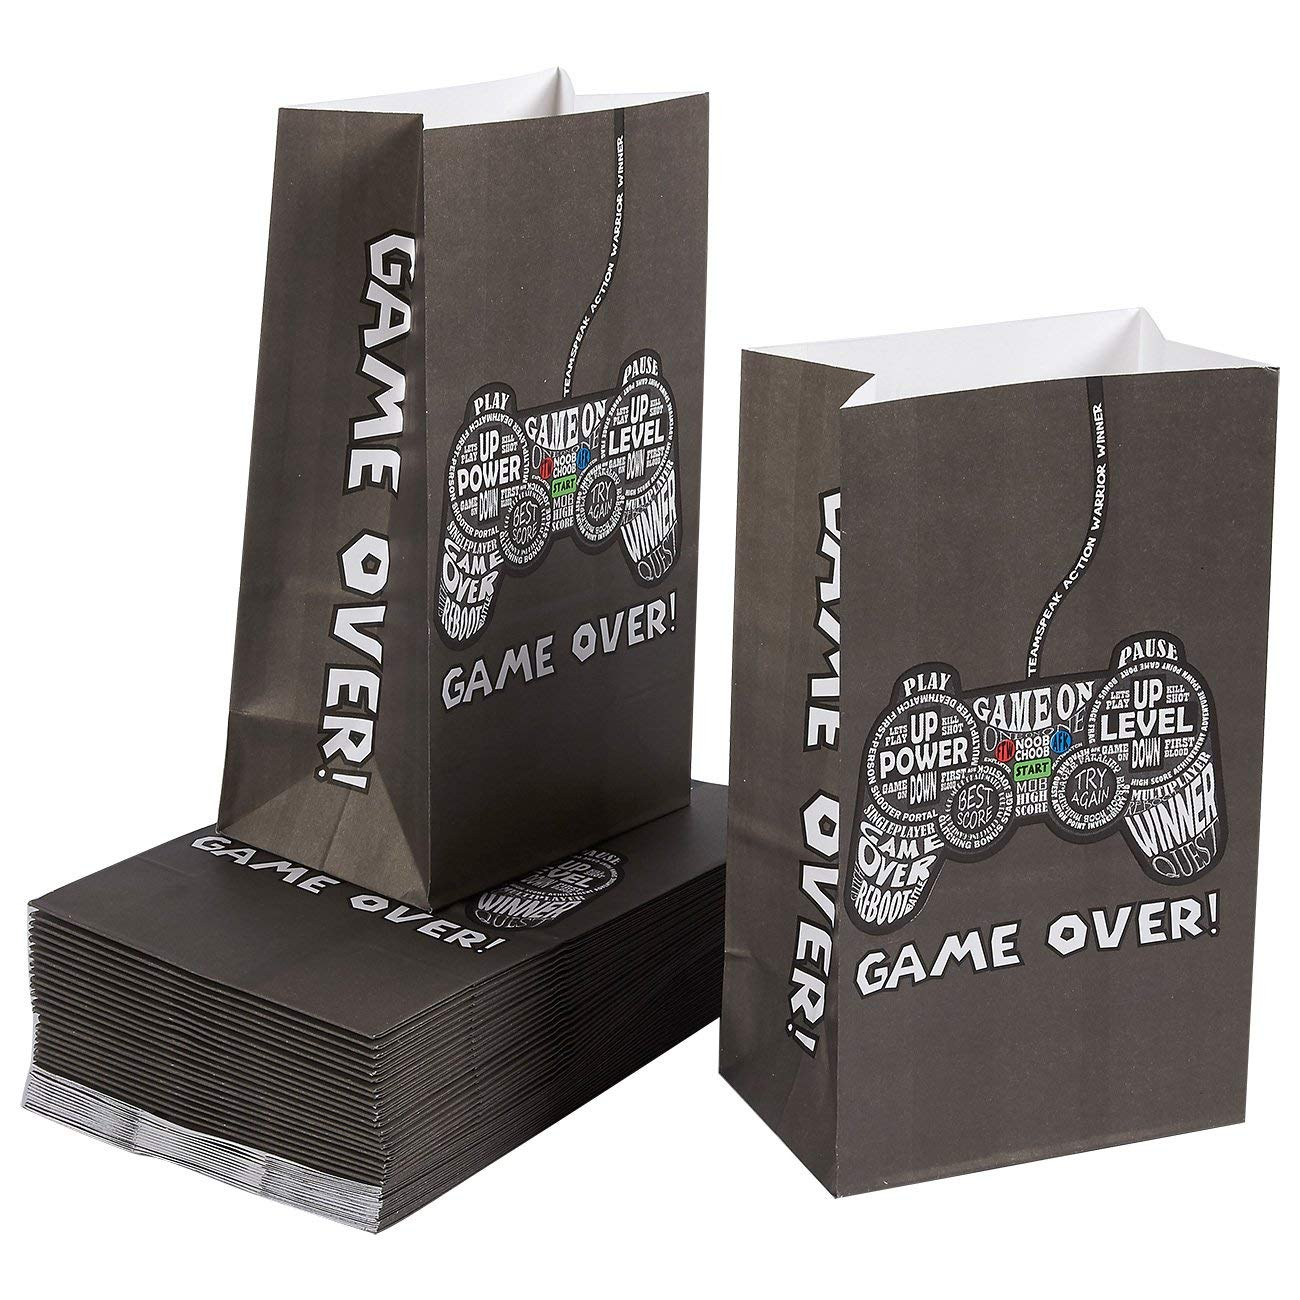 Party Treat Bags - 36-Pack Gift Bags, Gamer Party Supplies, Paper Favor Bags for Birthday Party Goodies, Recyclable Treat Bags for Kids - 5.2 x 8.7 x 3.3 Inches